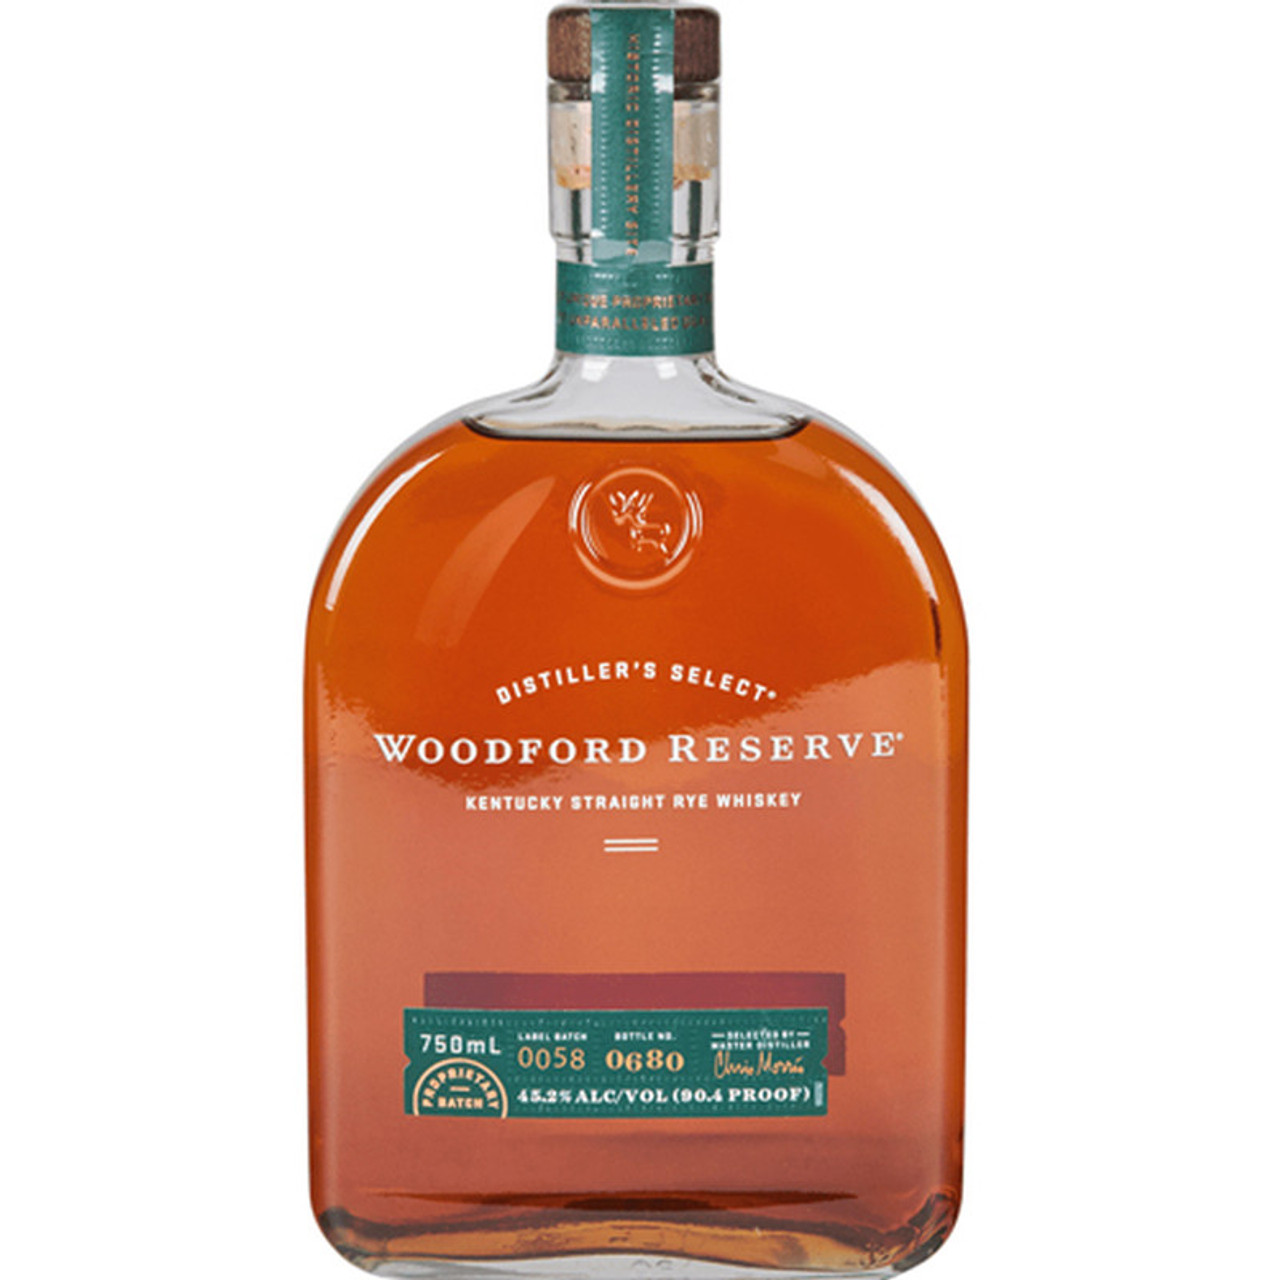 Made in the traditional style of Kentucky Ryes, Woodford Reserve Kentucky Straight Rye Whiskey delivers bold flavors of pepper and tobacco with a long fruit and sweetly spiced finish. It's available for purchase in select markets throughout the country.